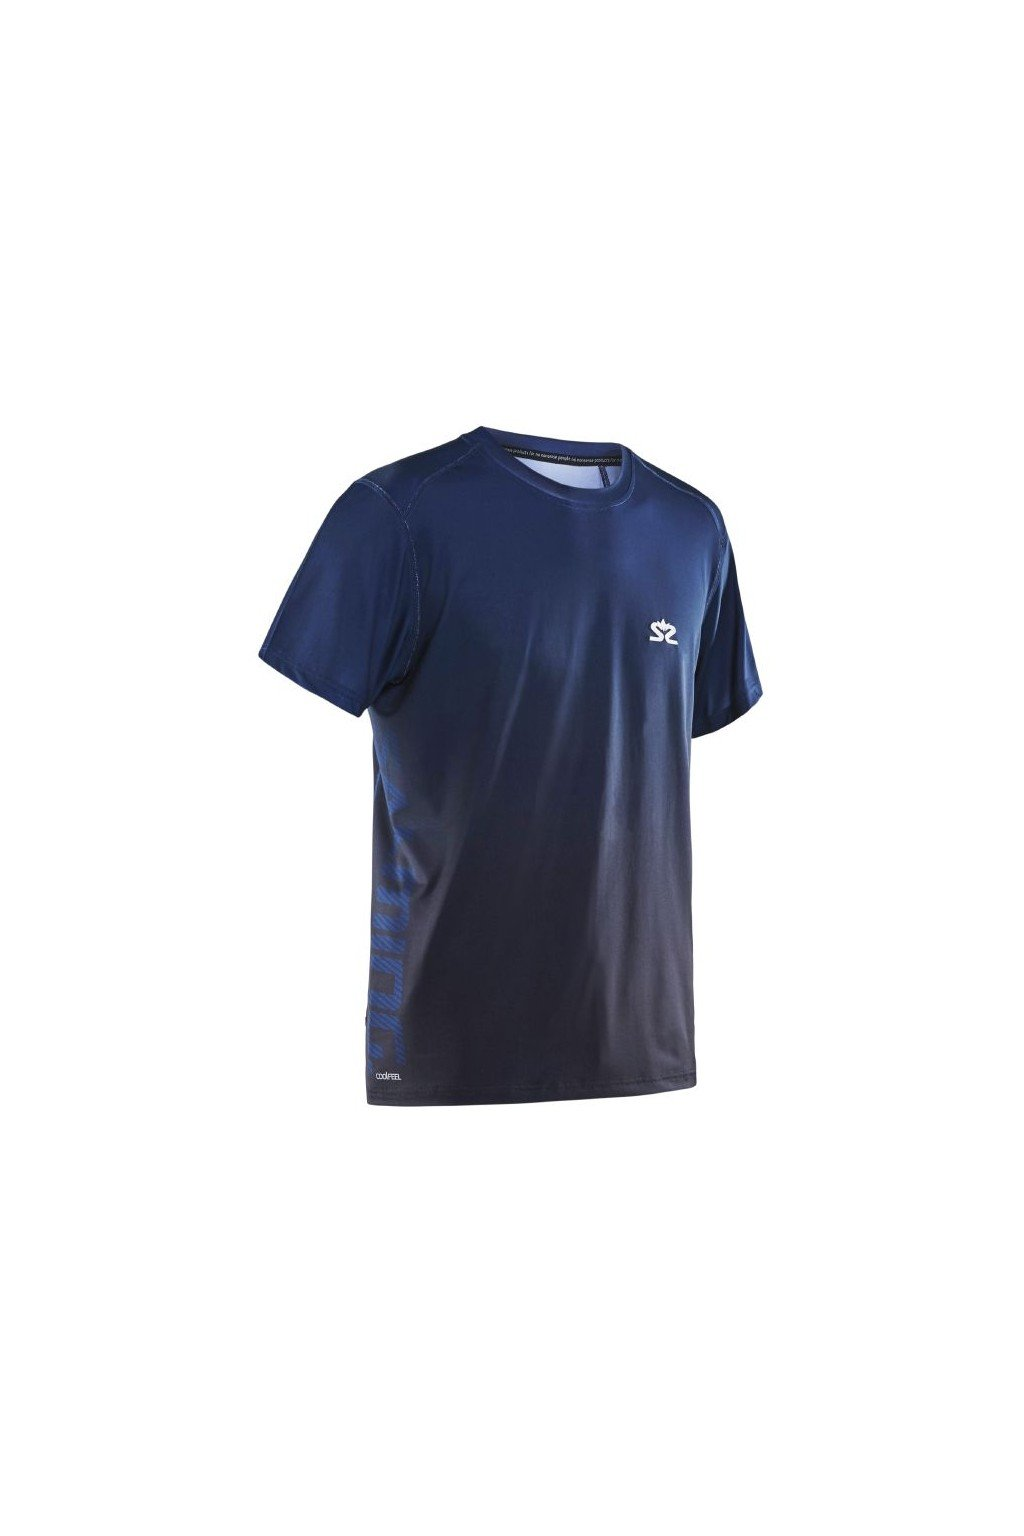 salming beam tee navy black xl